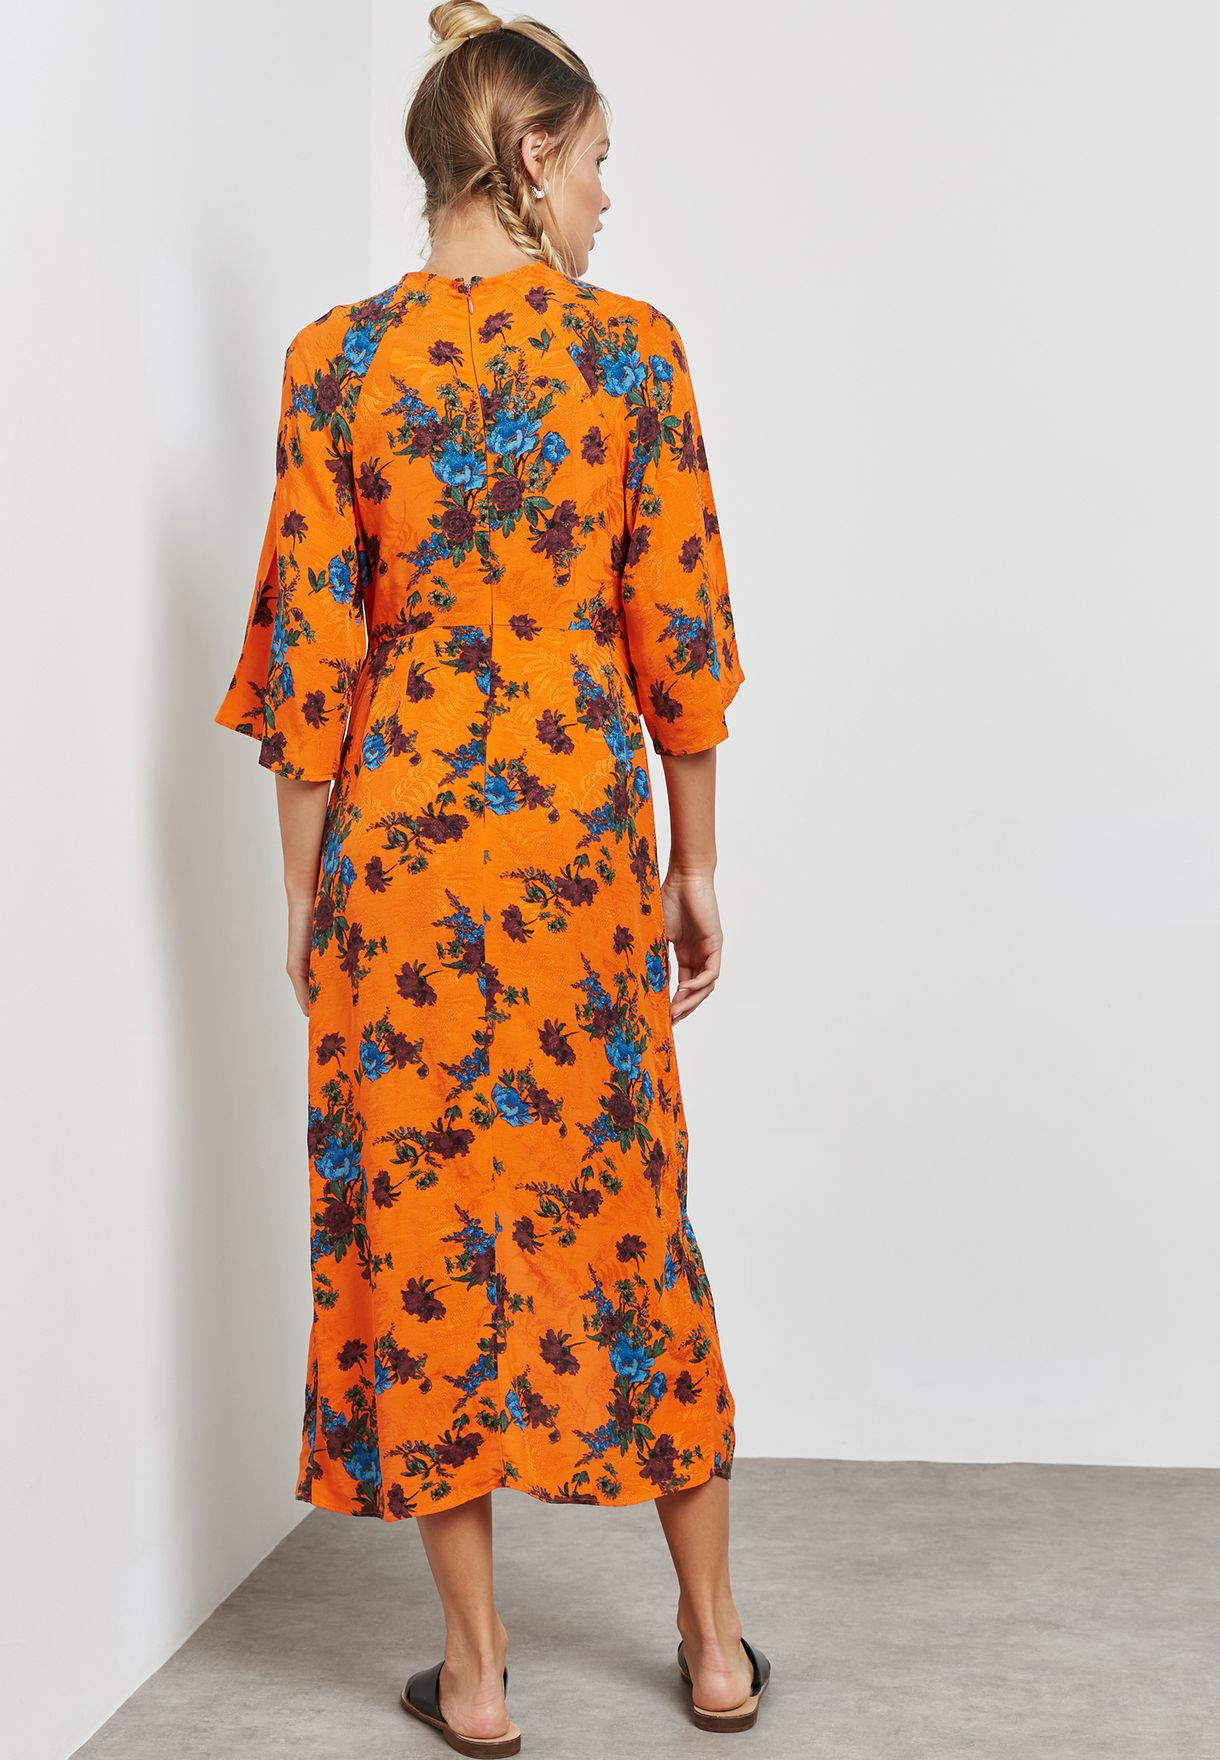 Floral Print Knotted Dress